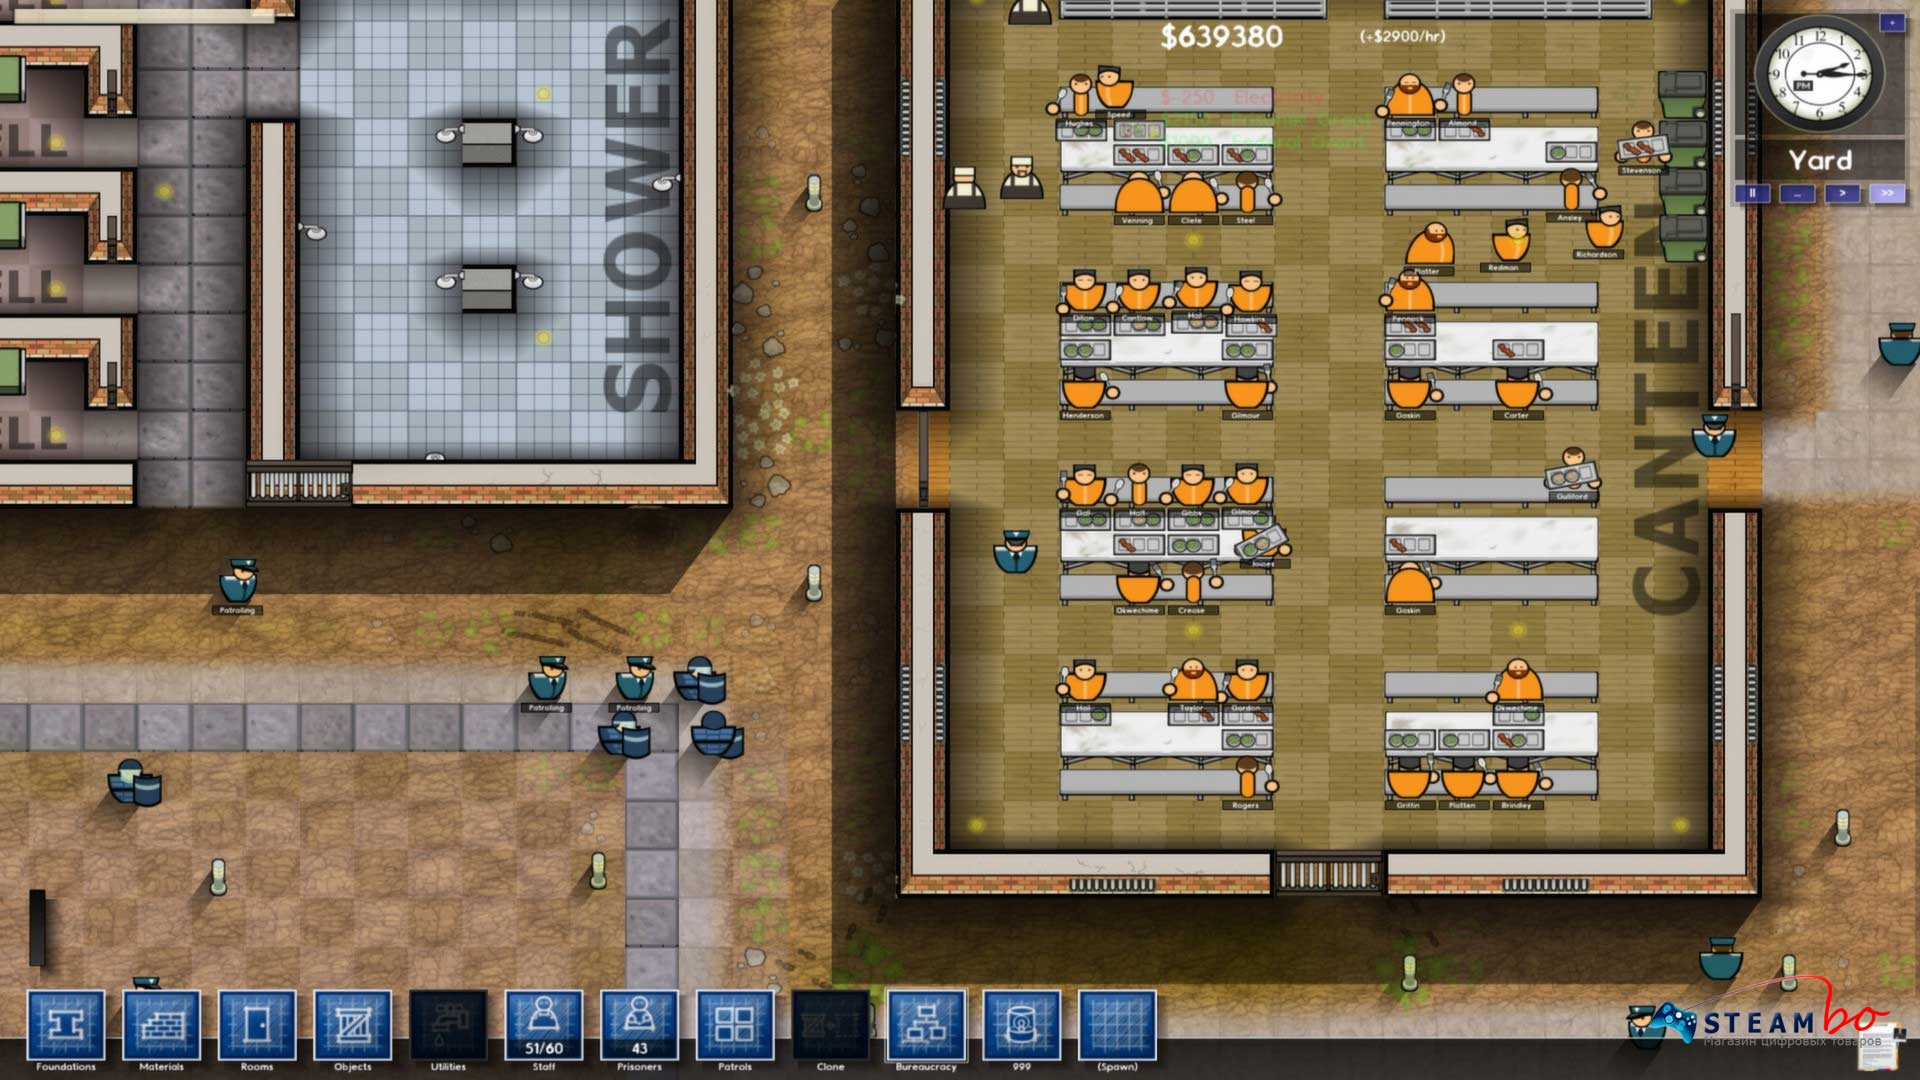 Prison Architect Region Free (Steam Gift / Key)